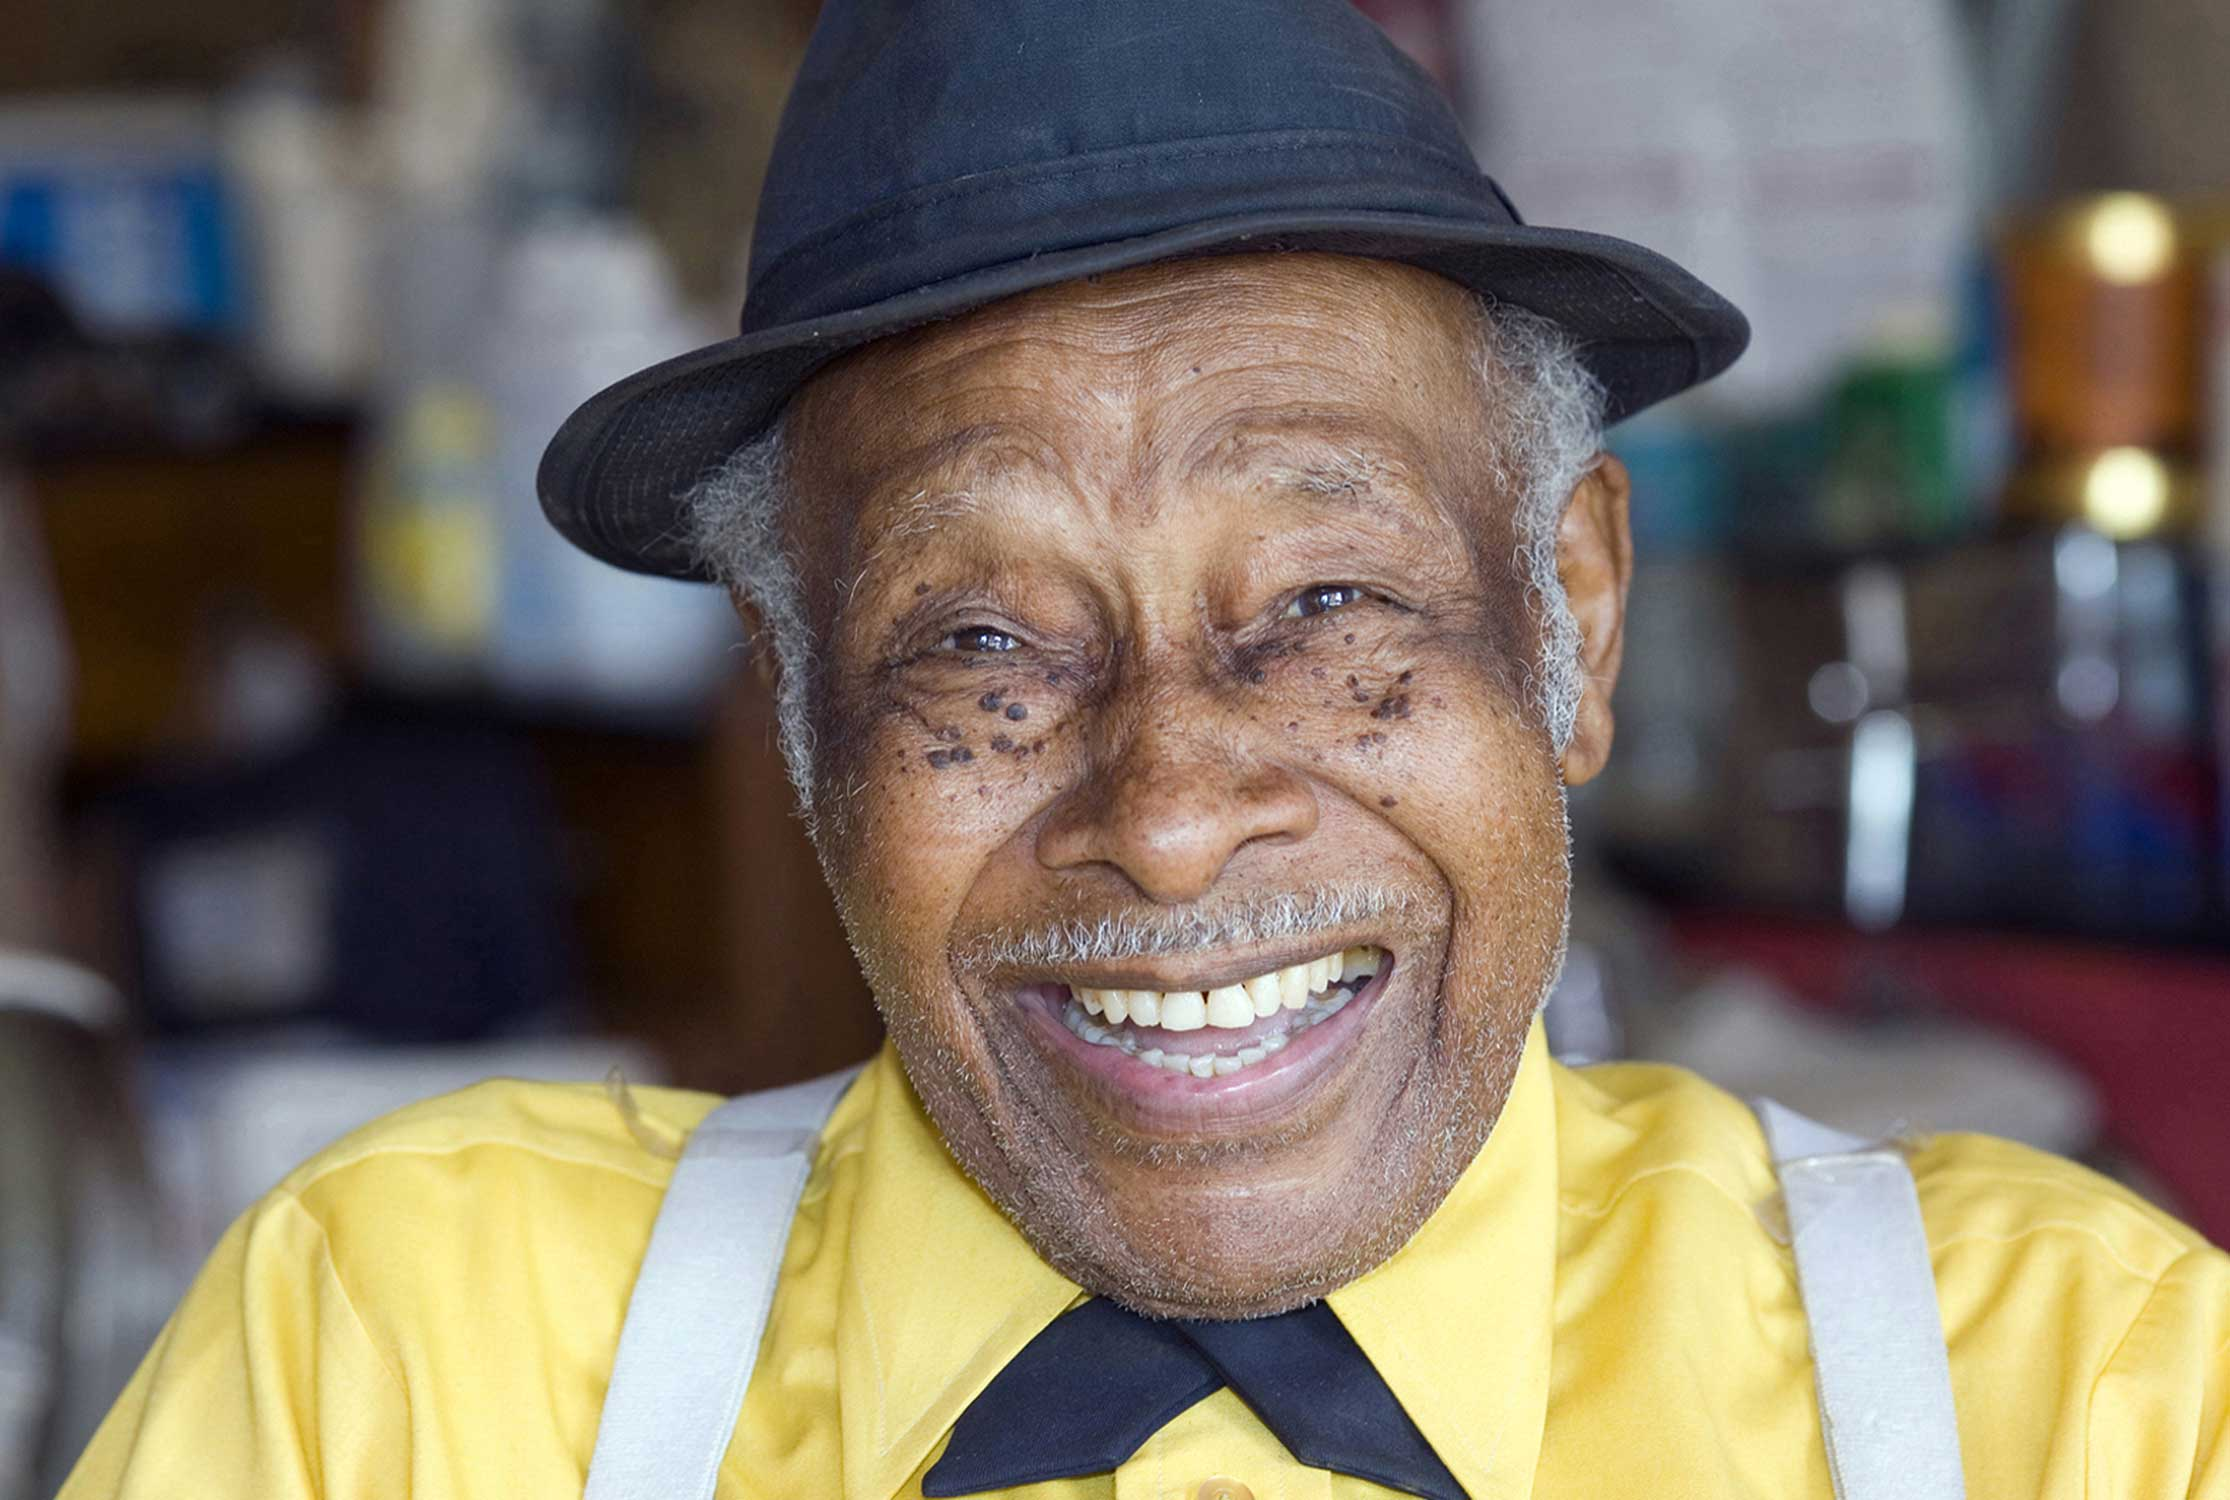 the-barber-of-birmingham-foot-soldier-of-the-civil-rights-movement-2011.jpg